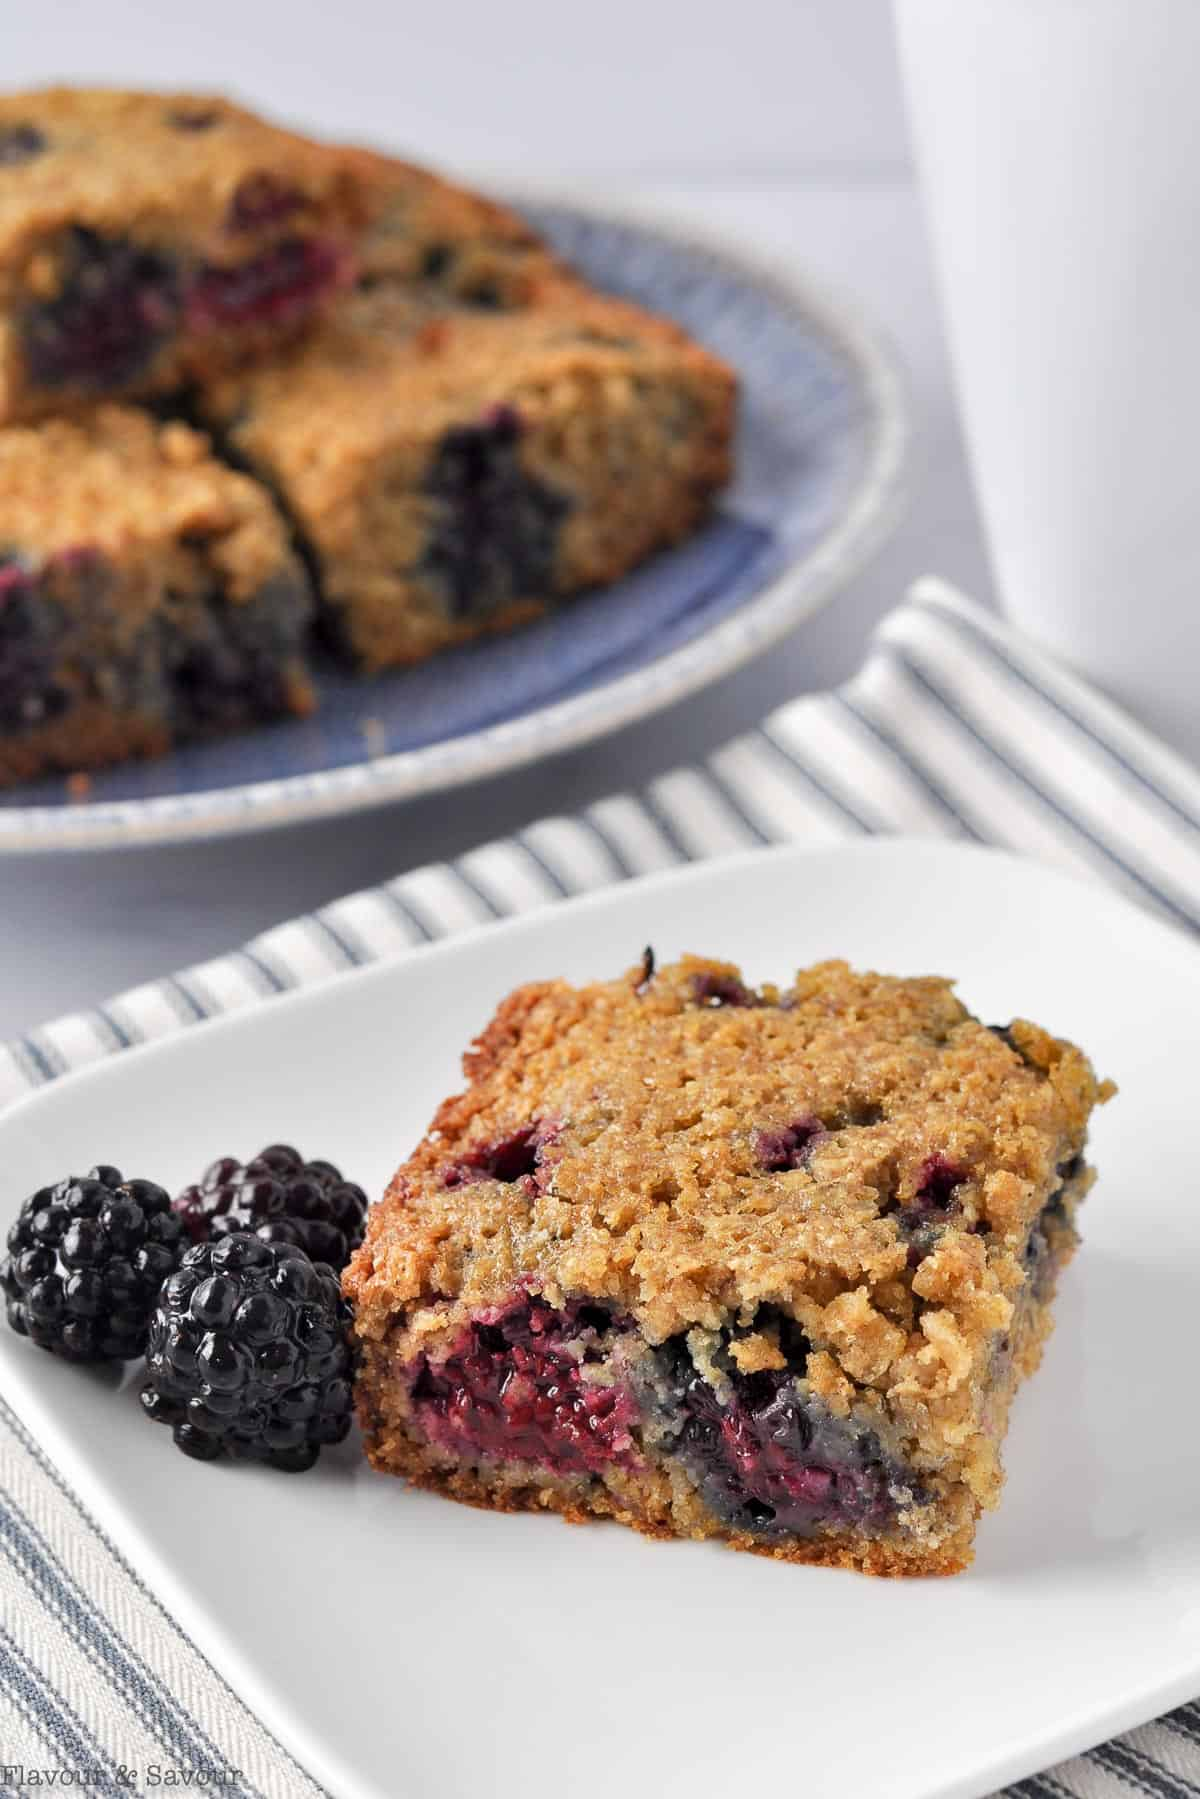 A blackberry oatmeal bar with fresh blackberries on a small square white plate